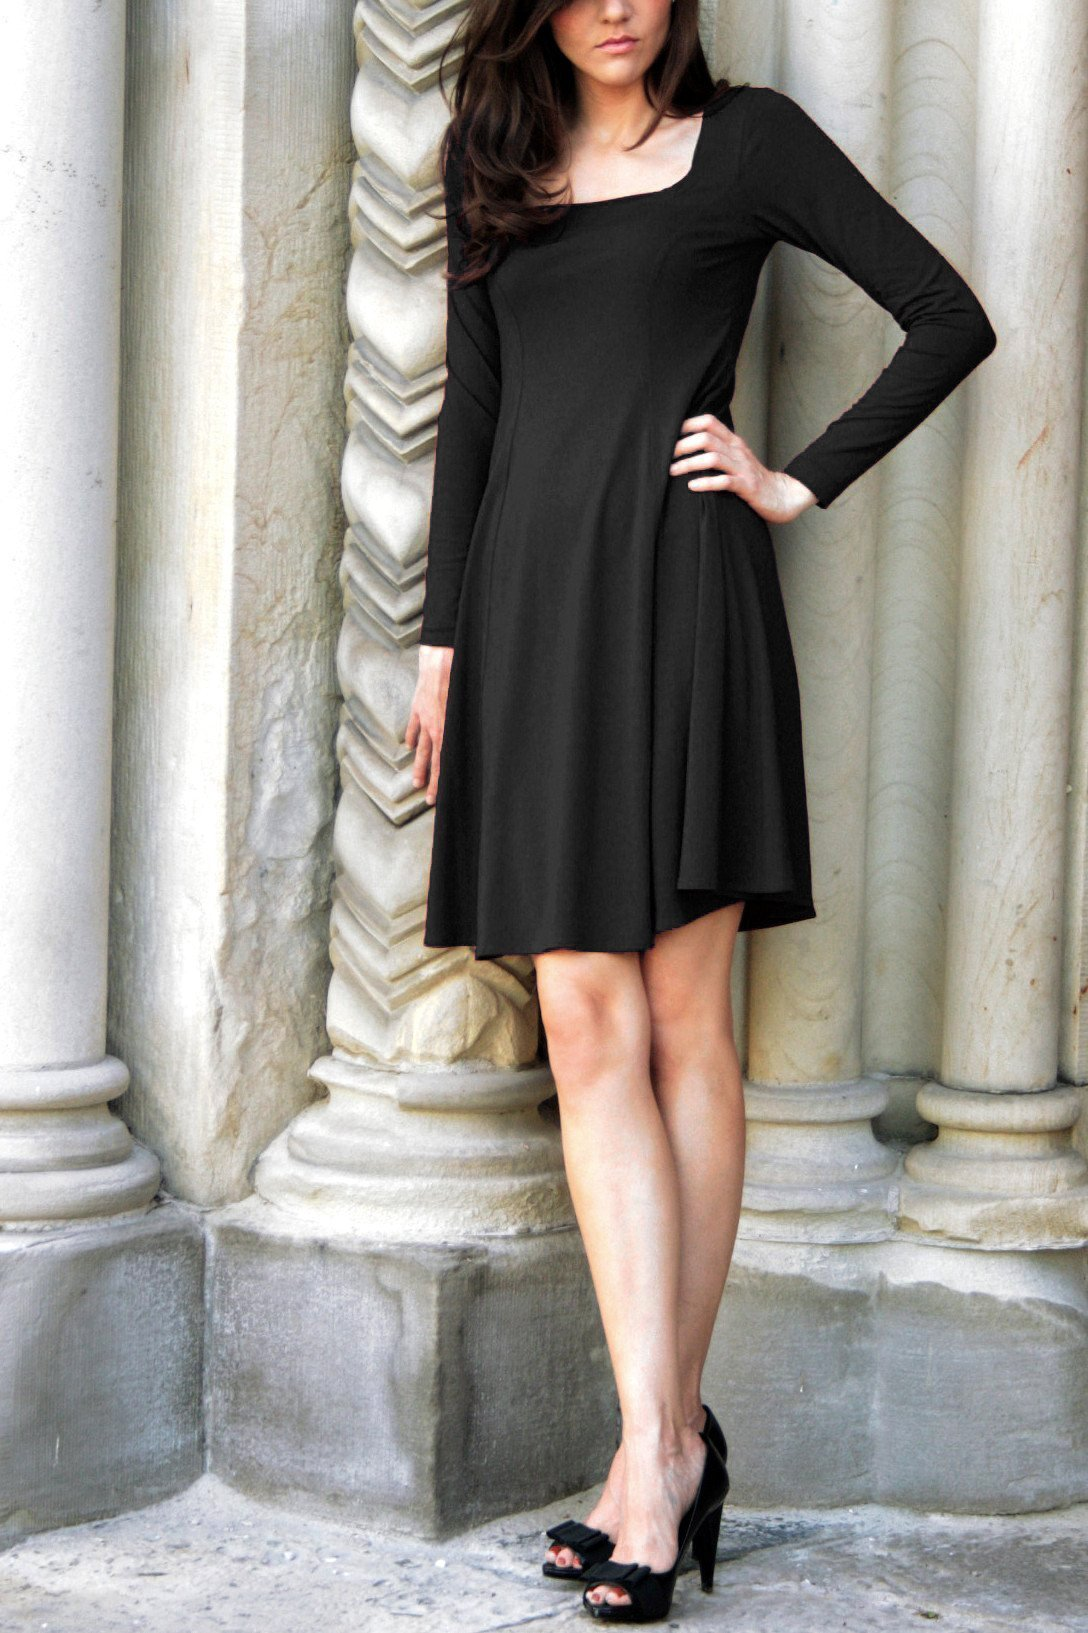 649ec389d2f Marion black long sleeve babydoll dress for adult women. Flowy dress with  long sleeve.